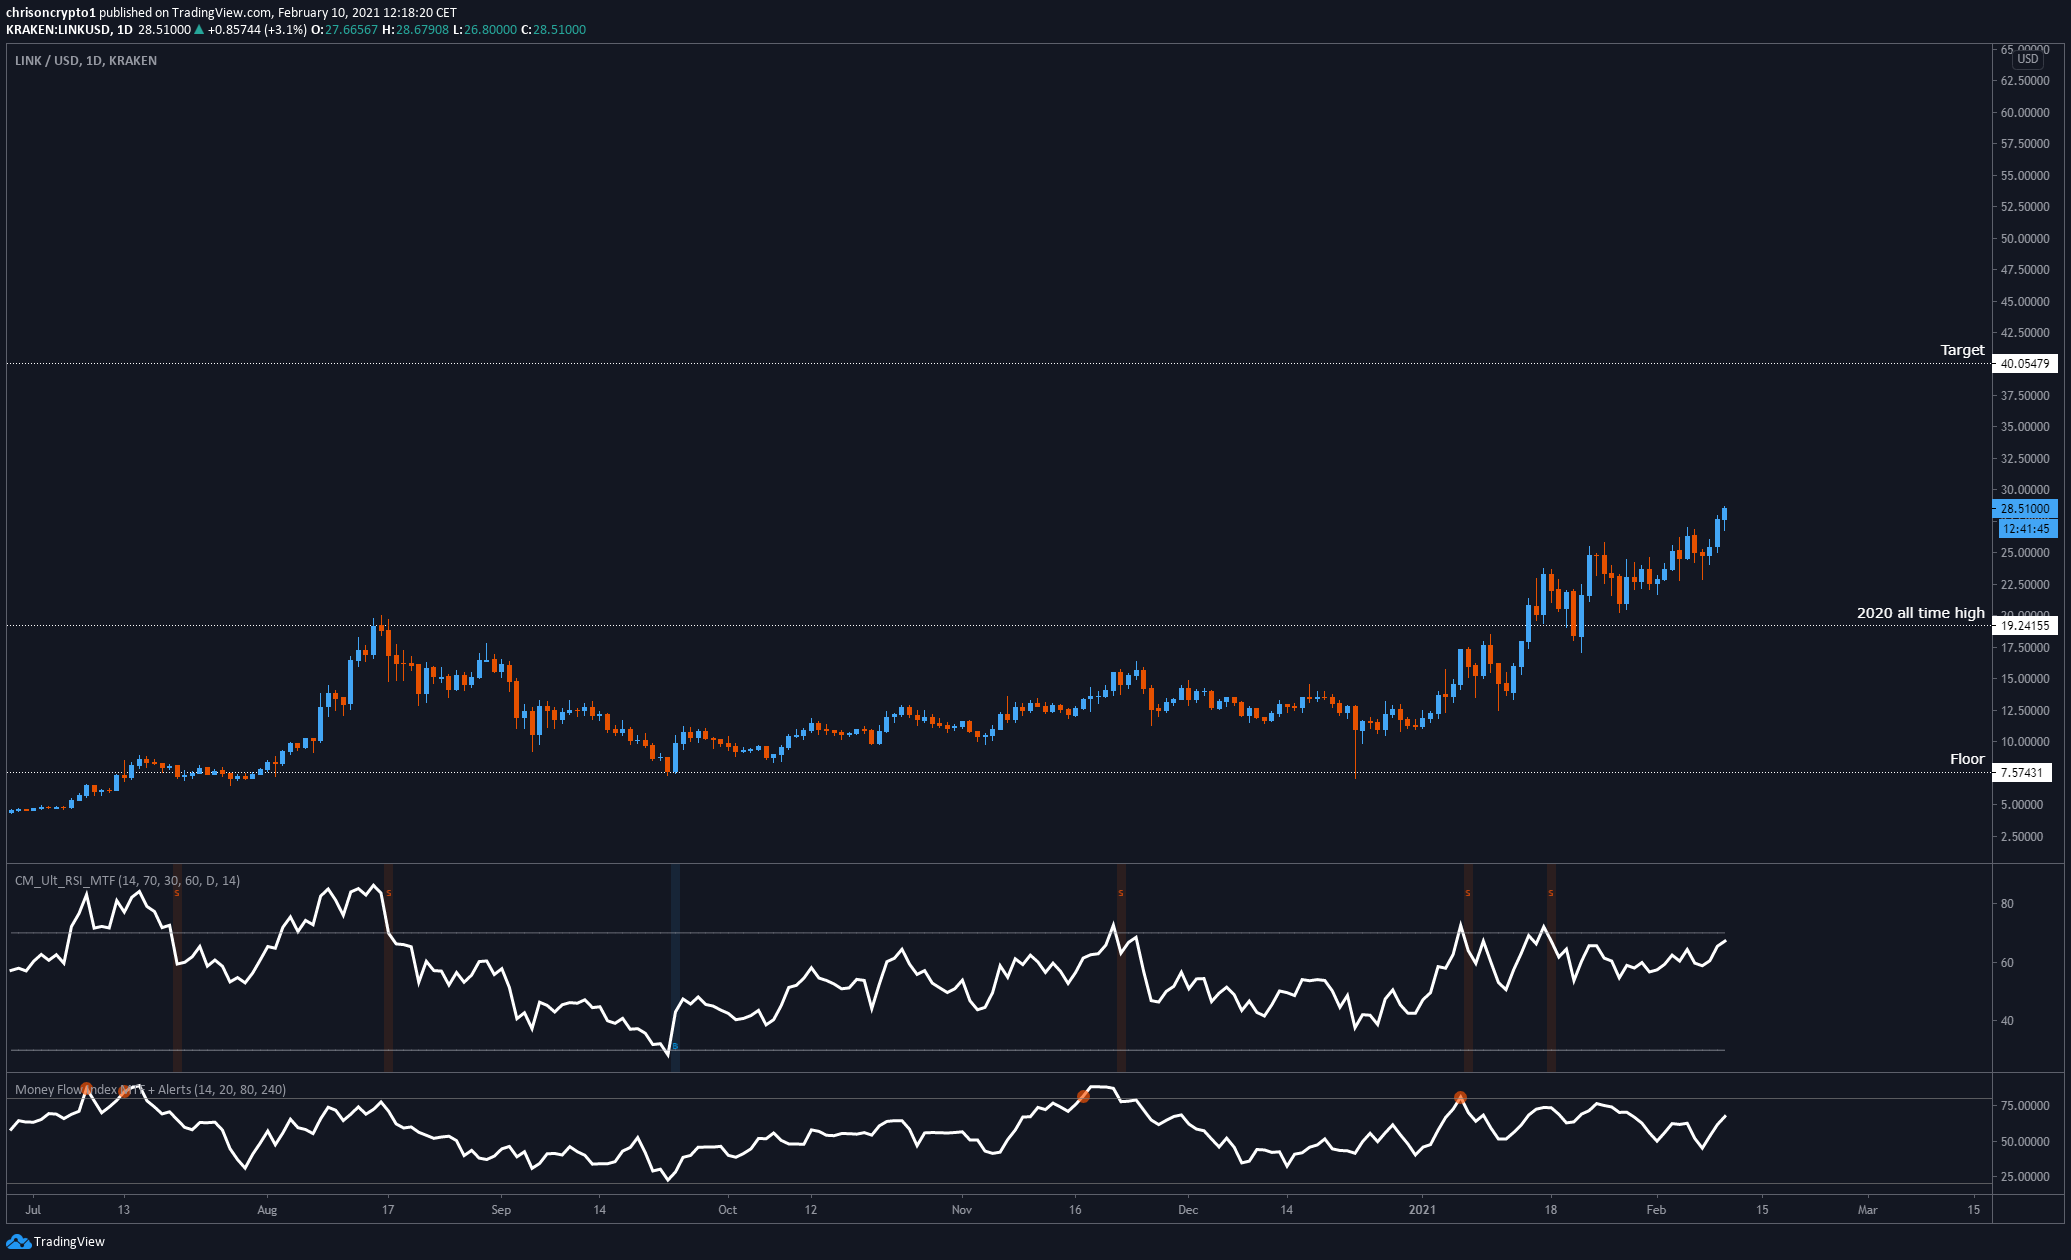 Ethereum Hits 1800 For The First Time After Cme Futures Launch By Christopher Coinmonks Feb 2021 Medium